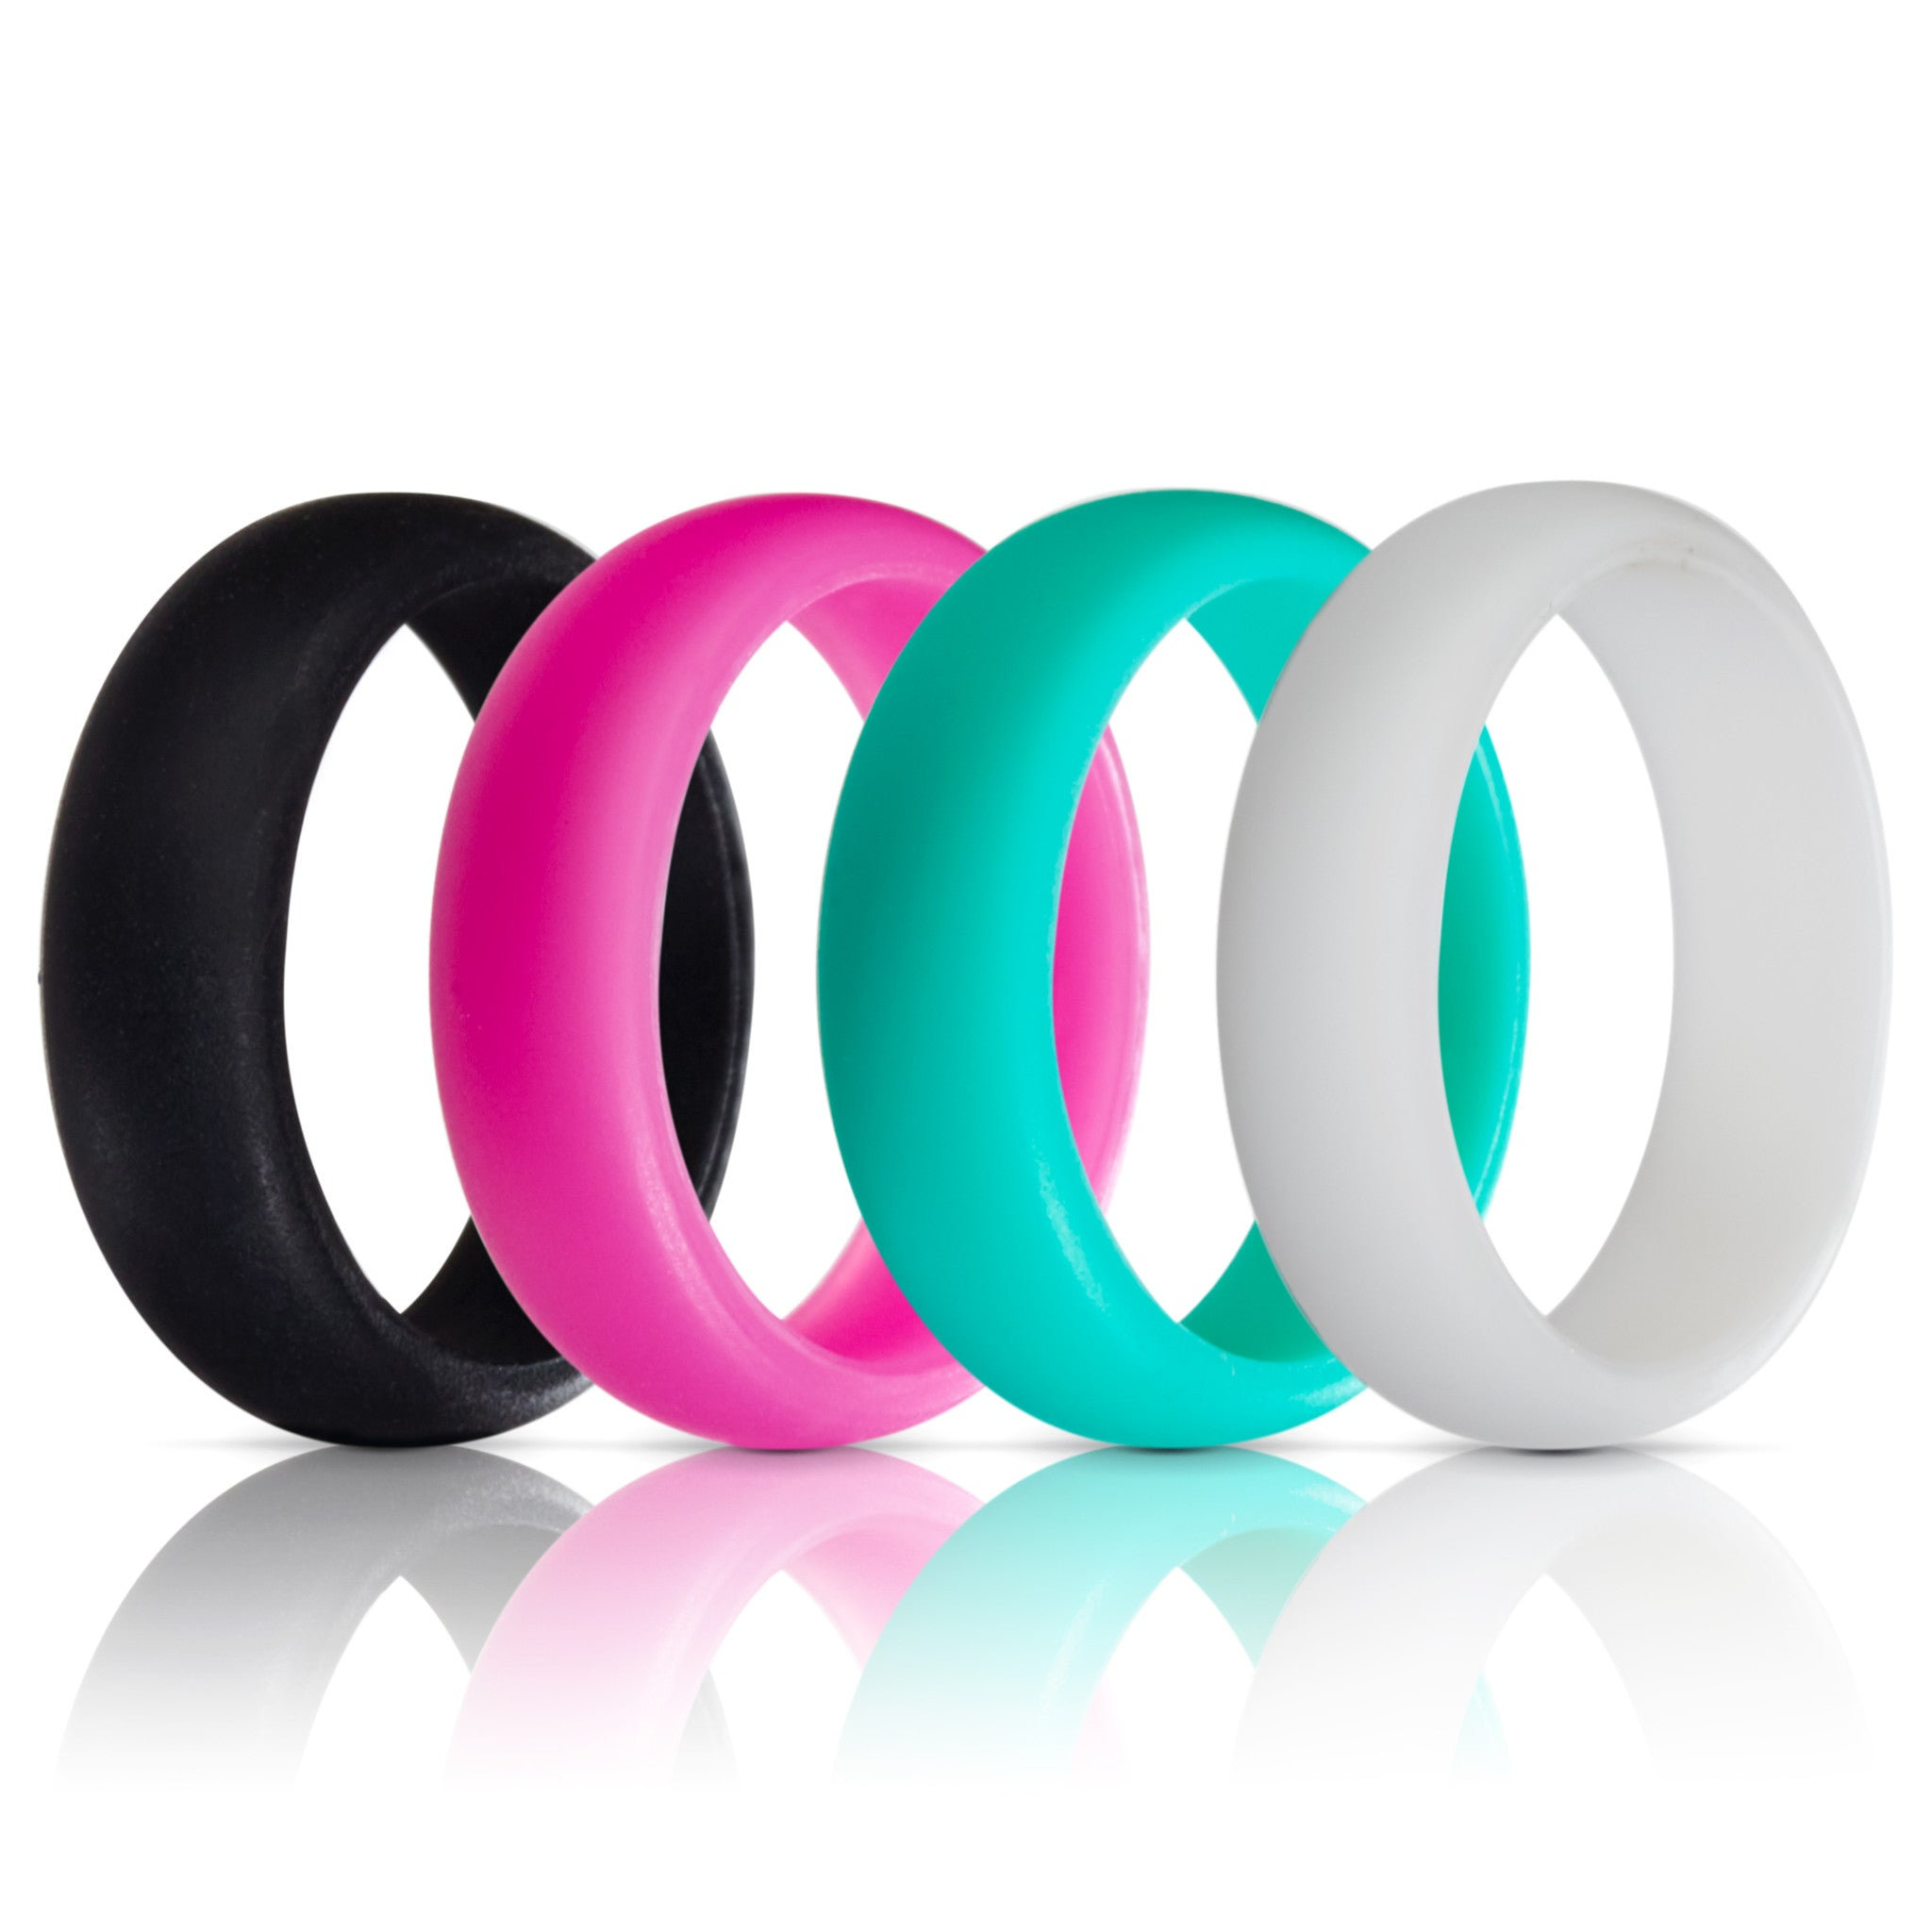 Silicone Wedding Rings - 4 Pack - Teal Pink Black White - (5.5mm Wide)